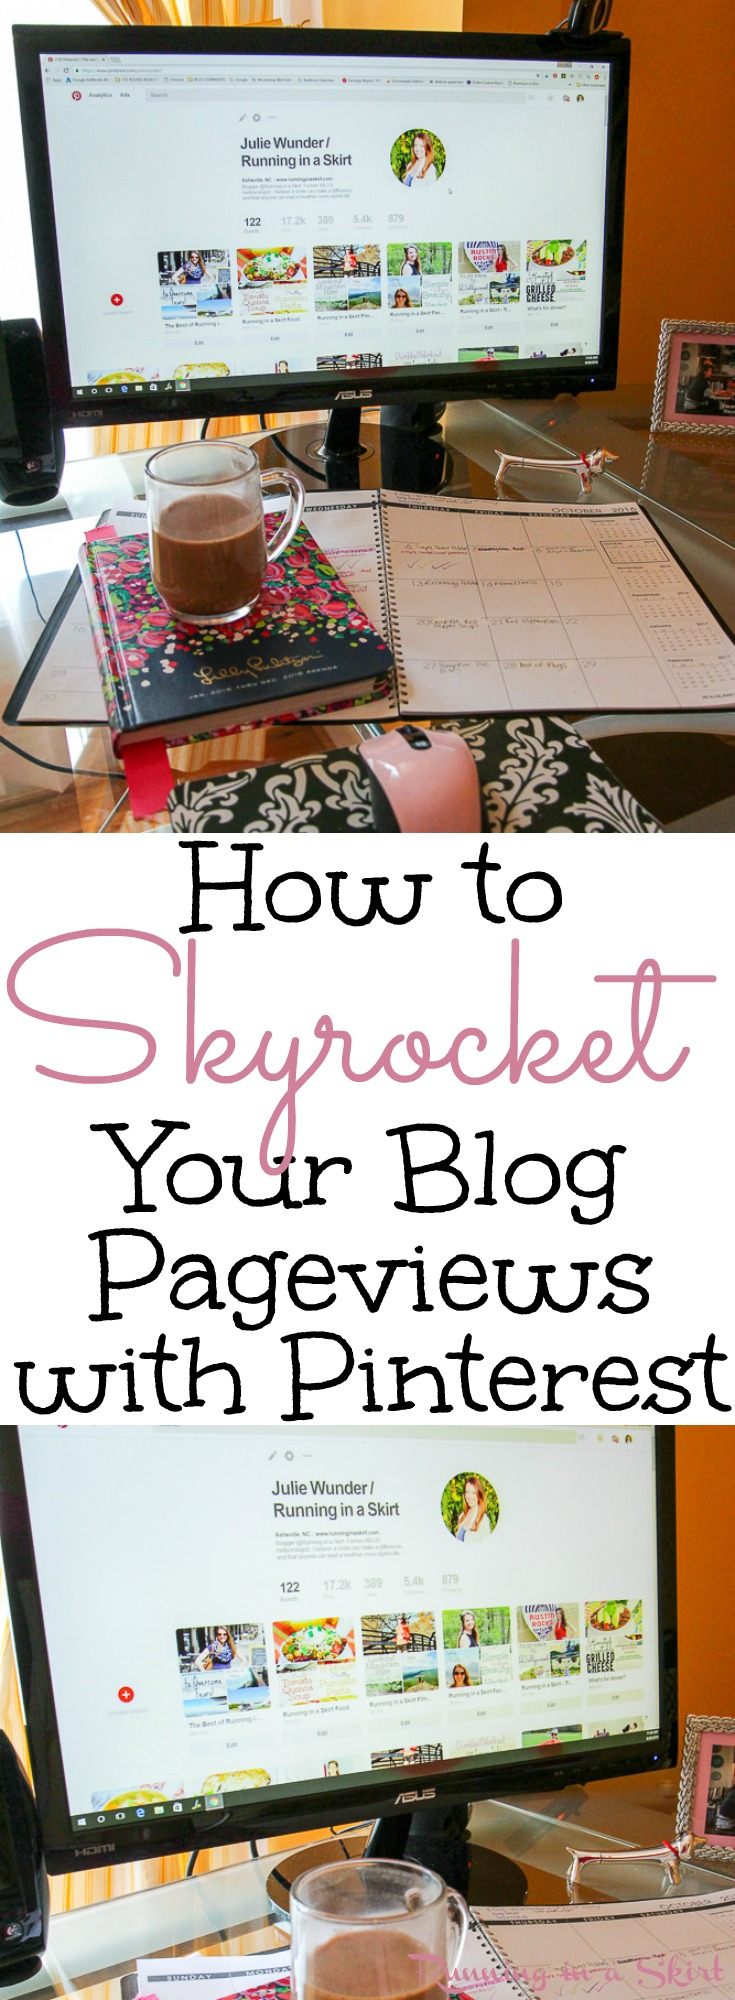 How I transformed my blog page views with Pinterest.  4 specific pinterest tips and tricks I used to get followers and traffic from Pinterest.  How to use the sight to improve your posts and get them seen!  Trying to grow your blog?  Read this! / Running in a Skirt via @juliewunder